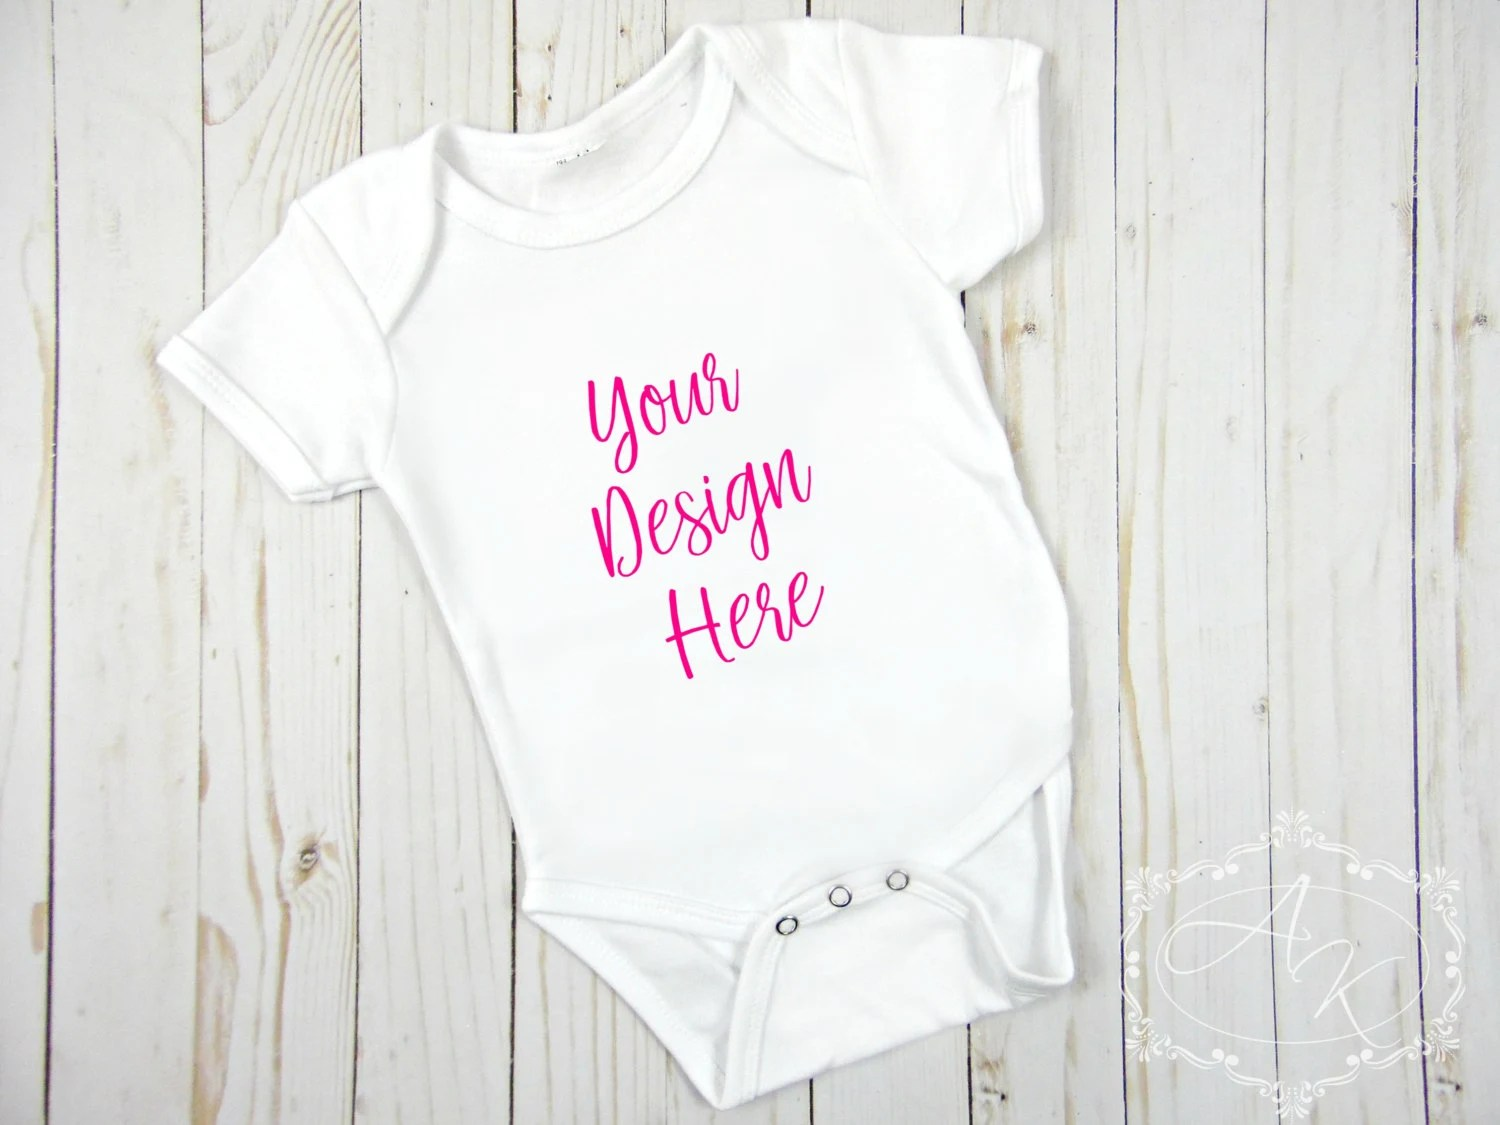 Blank White Baby Onesie Product Mock up, Styled Product Images